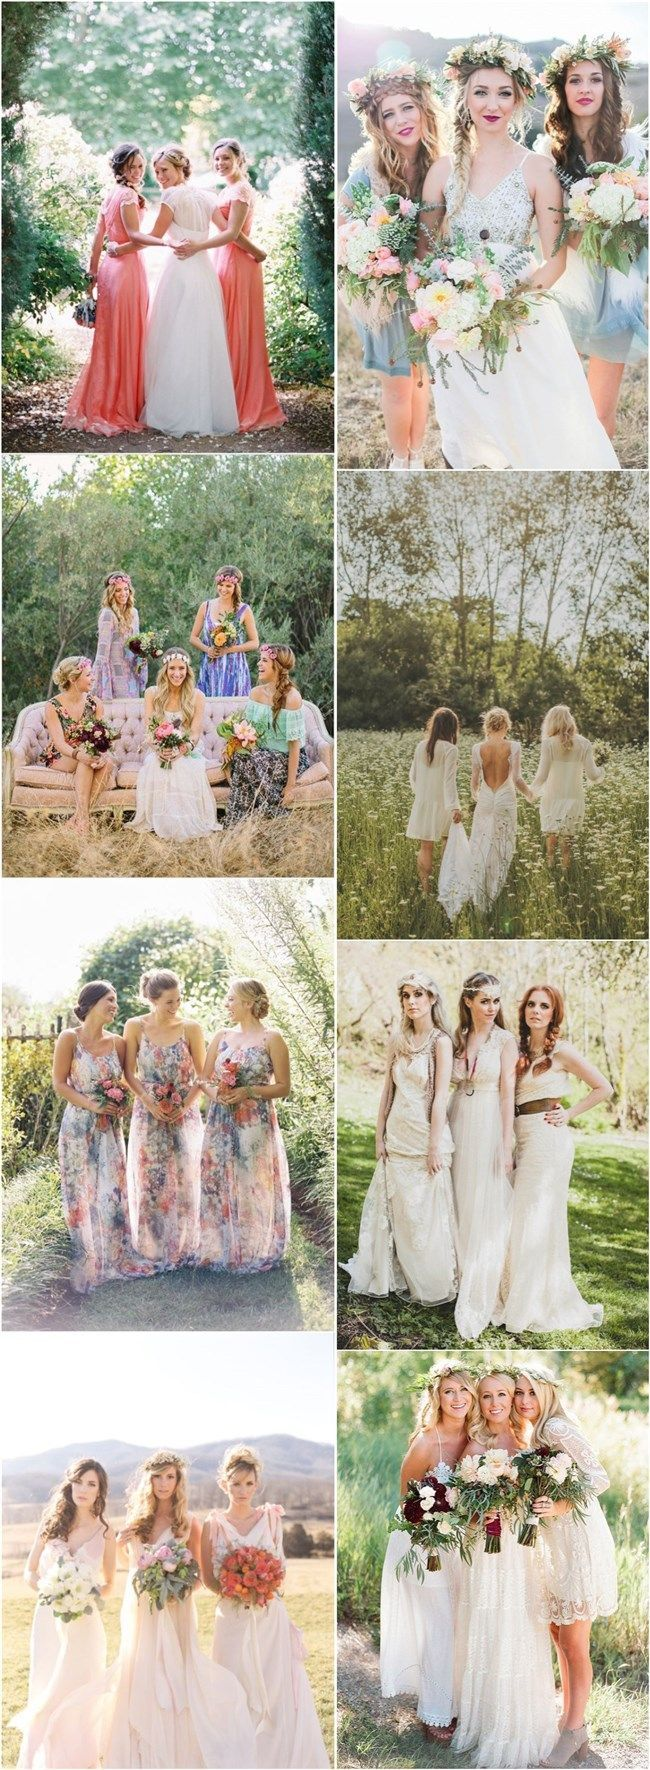 50 chic bohemian bridesmaid dresses ideas dress ideas bohemian 50 chic bohemian bridesmaid dresses ideas ombrellifo Gallery